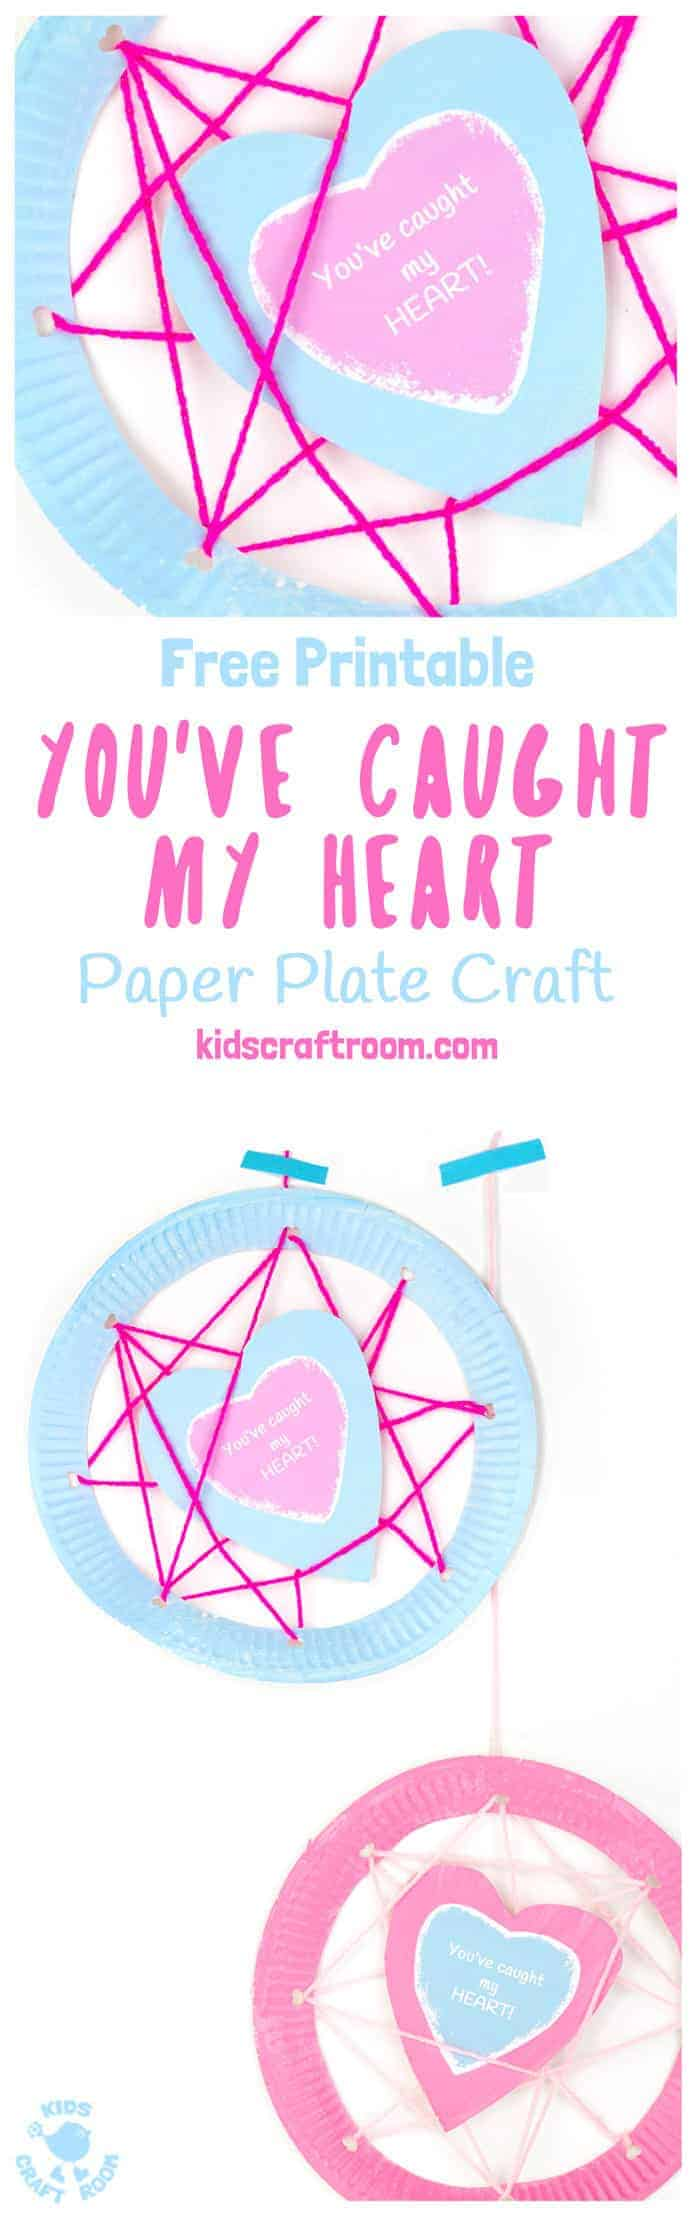 "PAPER PLATE HEART CRAFT ""YOU'VE CAUGHT MY HEART"" (with printable) is adorably cute! A perfect Valentine's Day craft or Mother's Day craft for kids and a great gift for family, friends and teachers. #paperplatecrafts #paperplates #paperplatecraft #valentinesdaycrafts #valentinescrafts #valentinecrafts #heartcrafts #kidscrafts #kidscraftideas #mothersdaycrafts #valentinegift #mothersdaygift #paperplatecrafts #paperplates #paperplatecraft #valentinesdaycrafts"